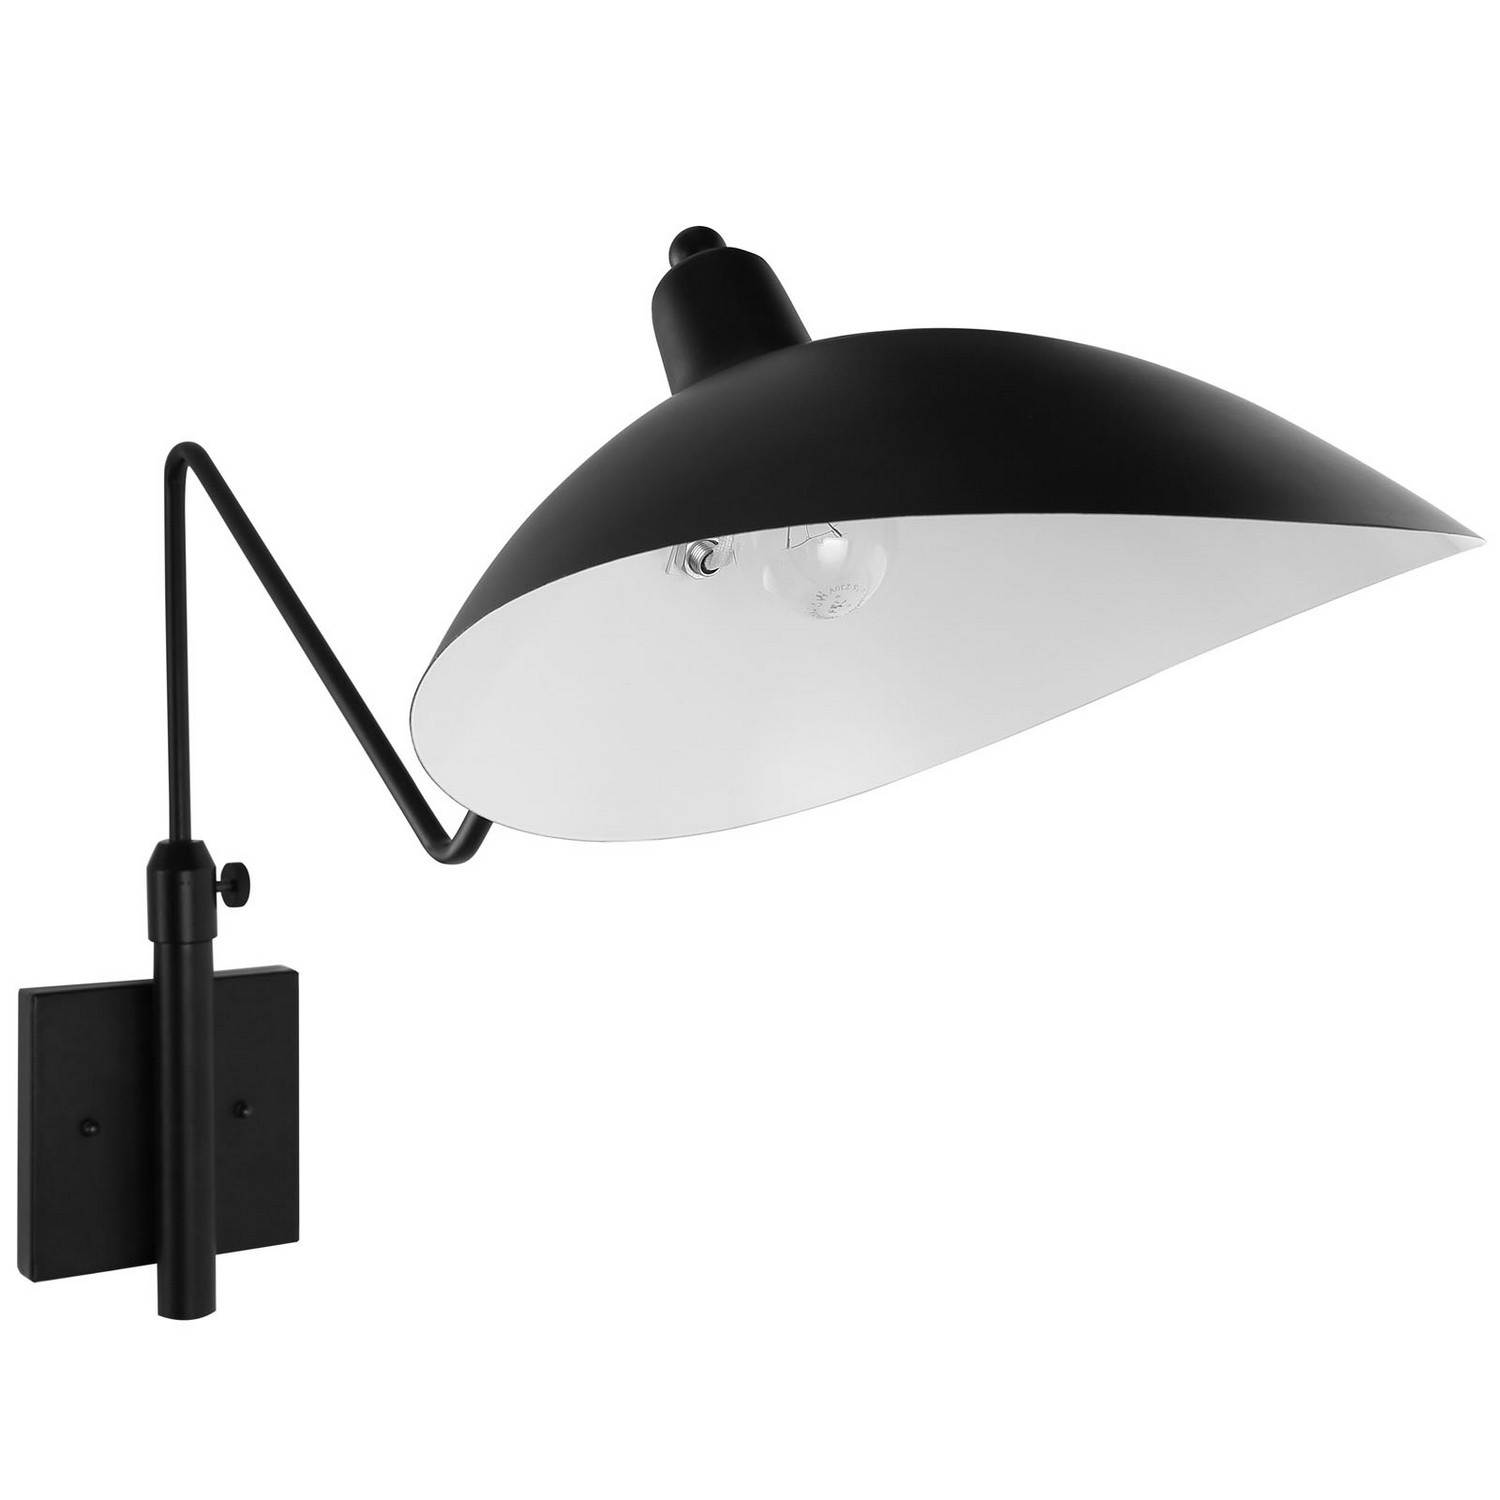 Modway View Wall Lamp - Black